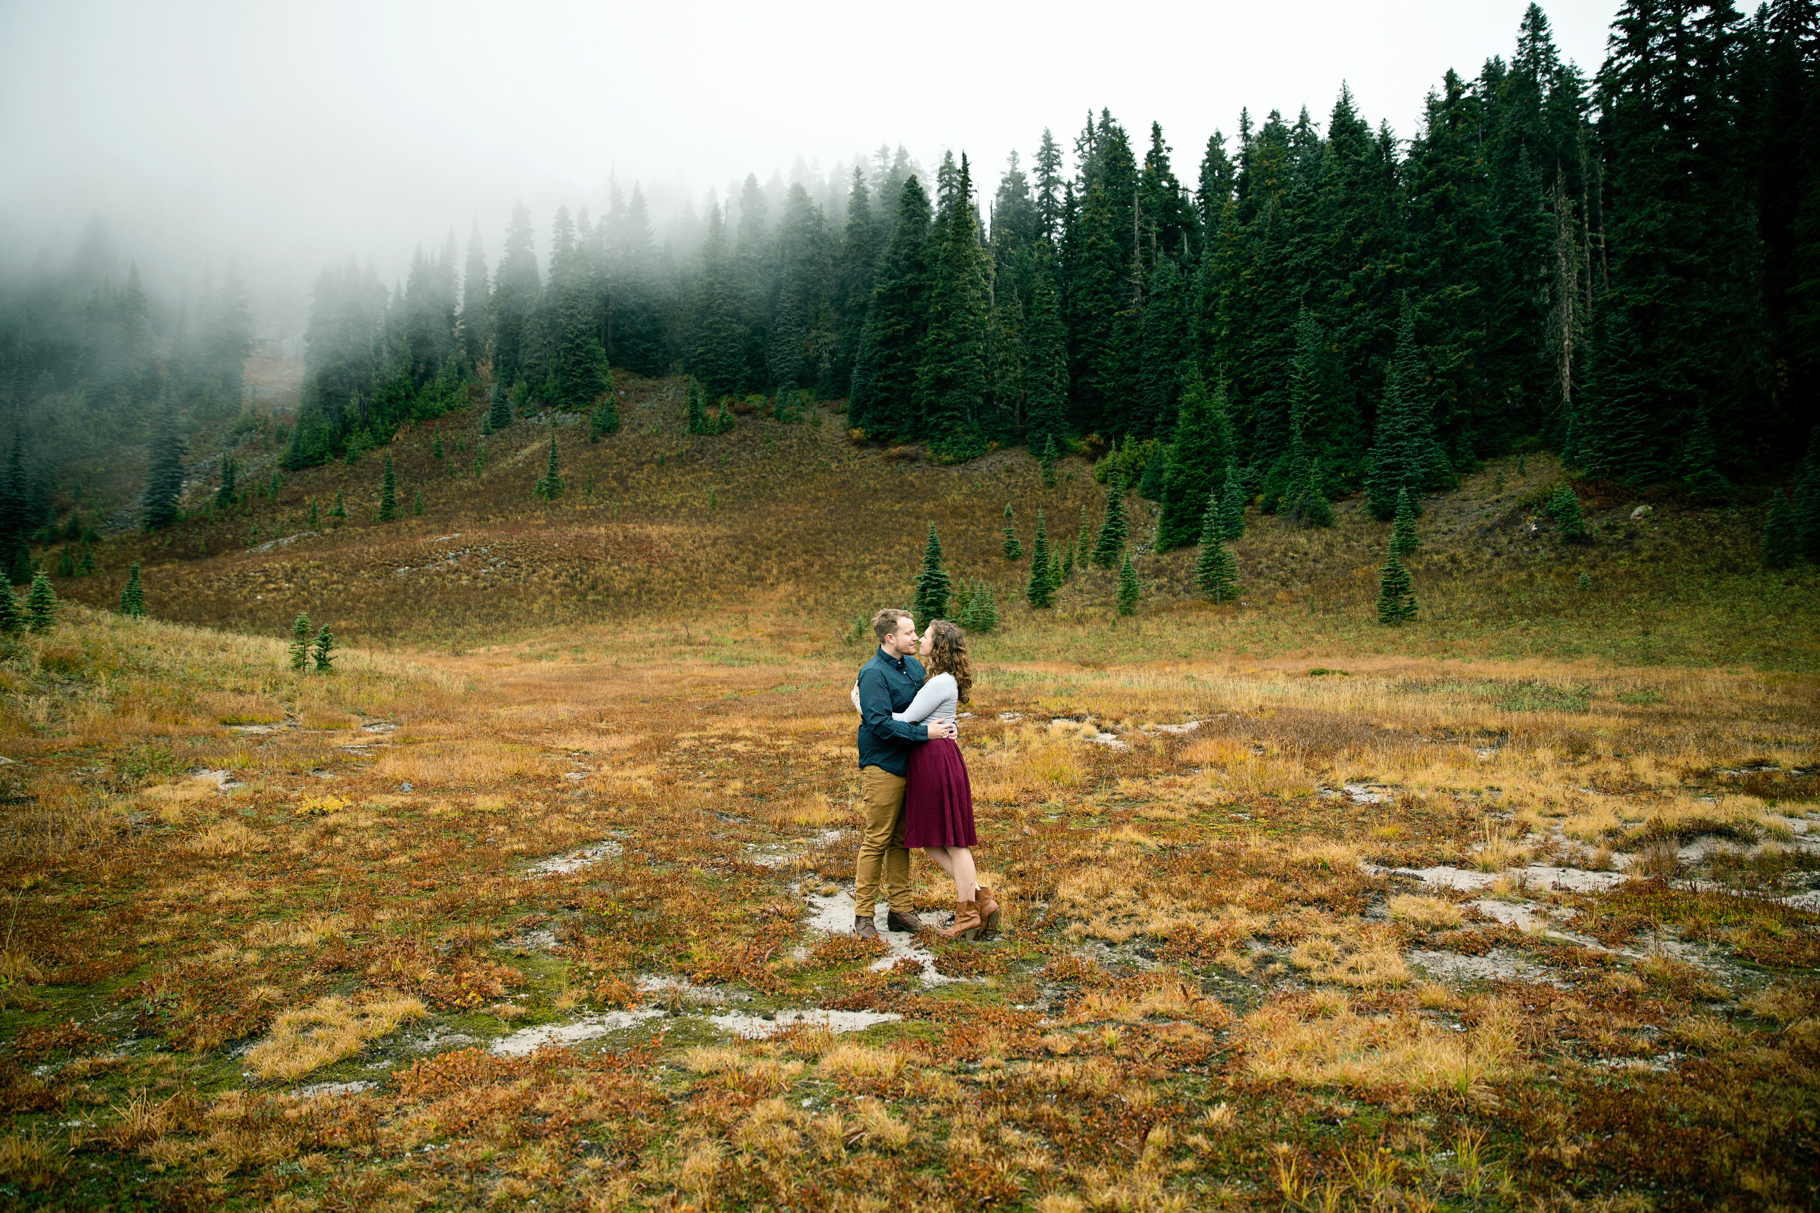 72-2015-Photographer-Year-in-Review-Mt-Rainier-National-Park-Anniversary-Adventure-PCT-Hiking-Seattle-Wedding-Photography-by-Betty-Elaine